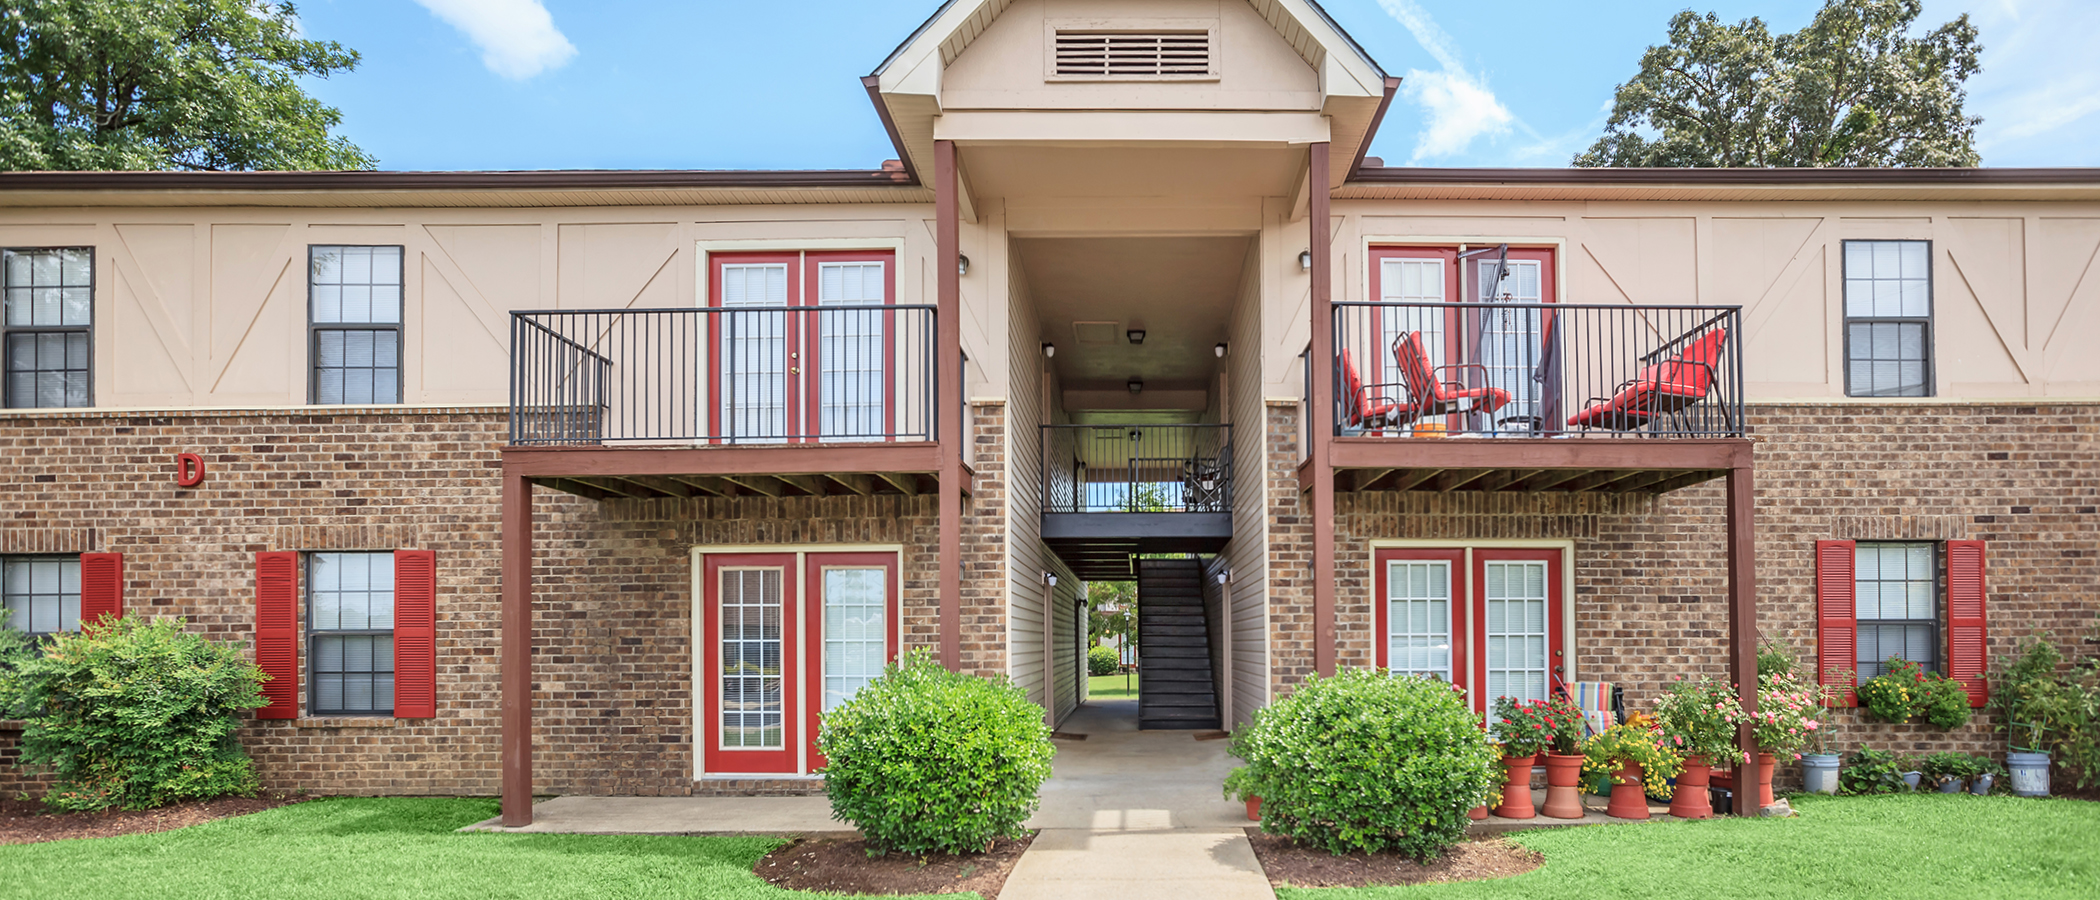 1 Bedroom Apartments Murfreesboro Tn 28 Images 1 Bedroom Apartments In Murfreesboro Tn